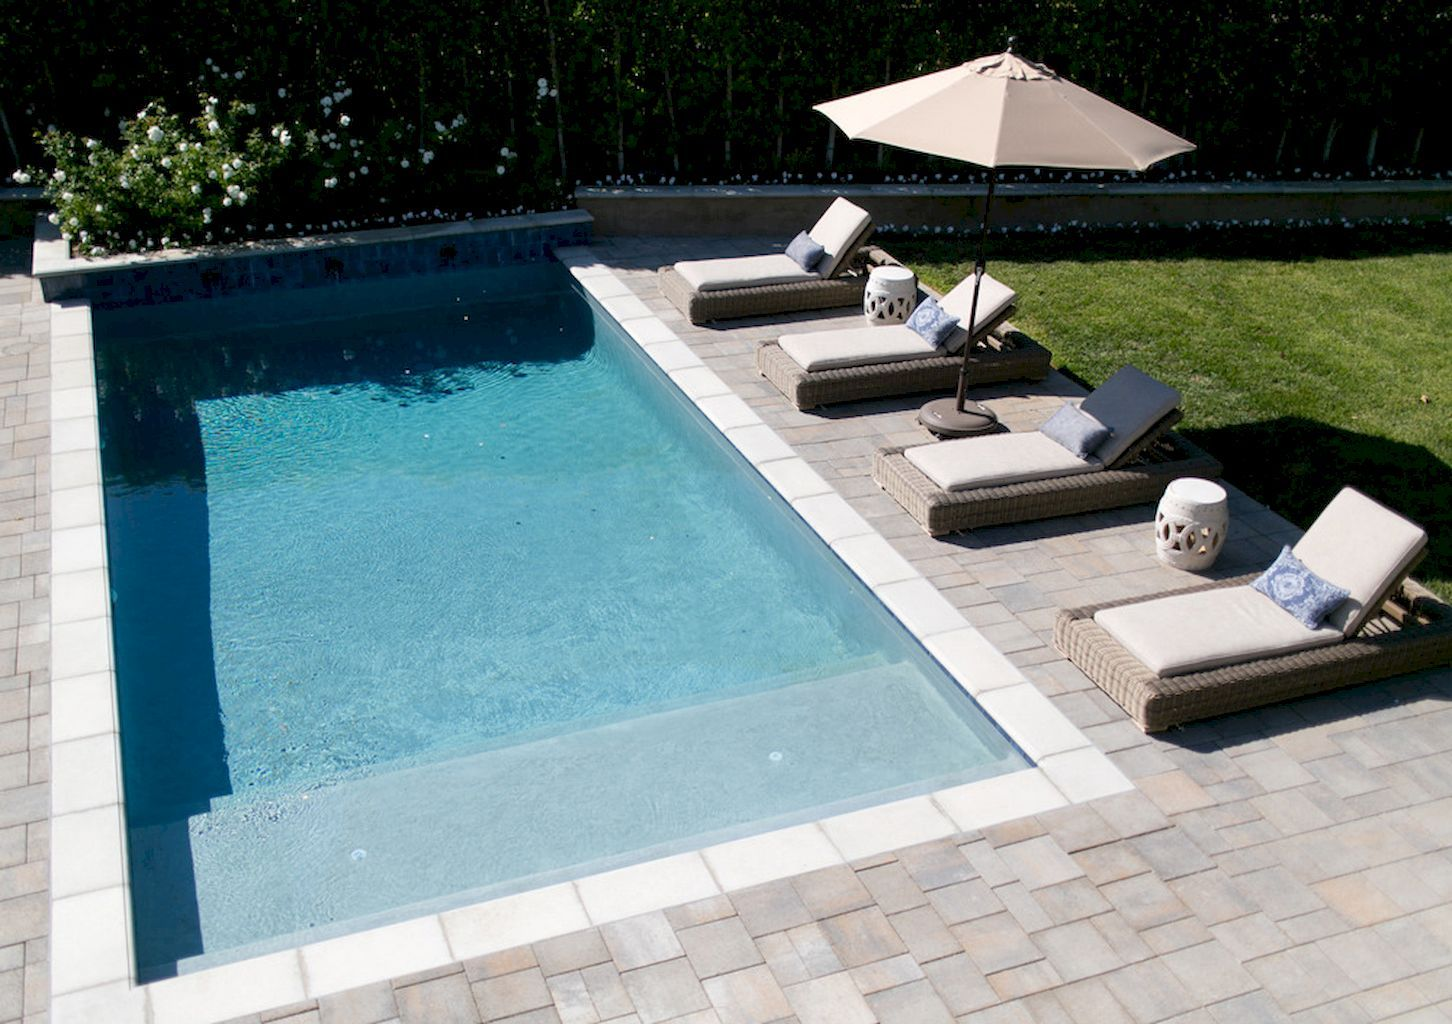 awesome 88 swimming pool ideas for a small backyard https